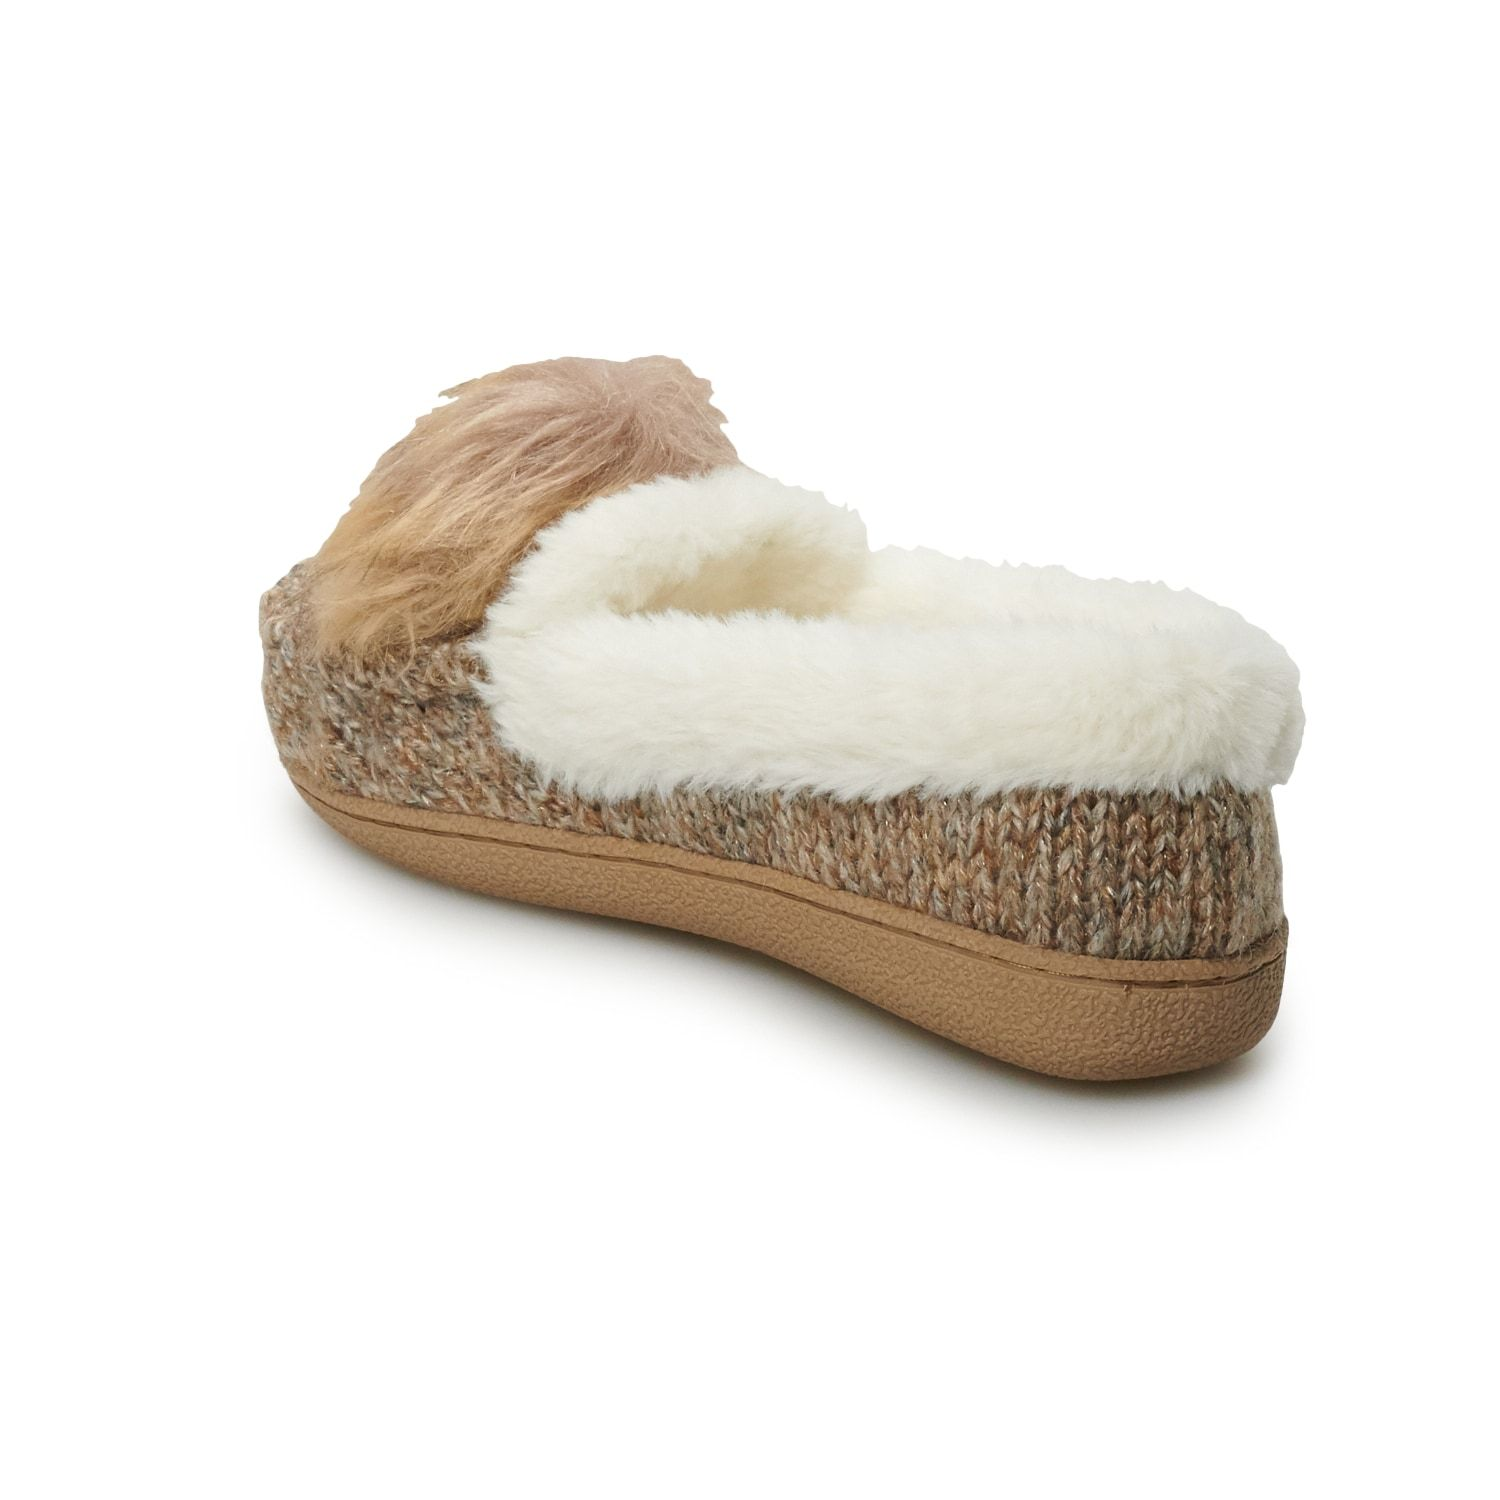 06682ea3ed26e Women's SONOMA Goods for Life Sweater Knit Moccasin Slippers ...